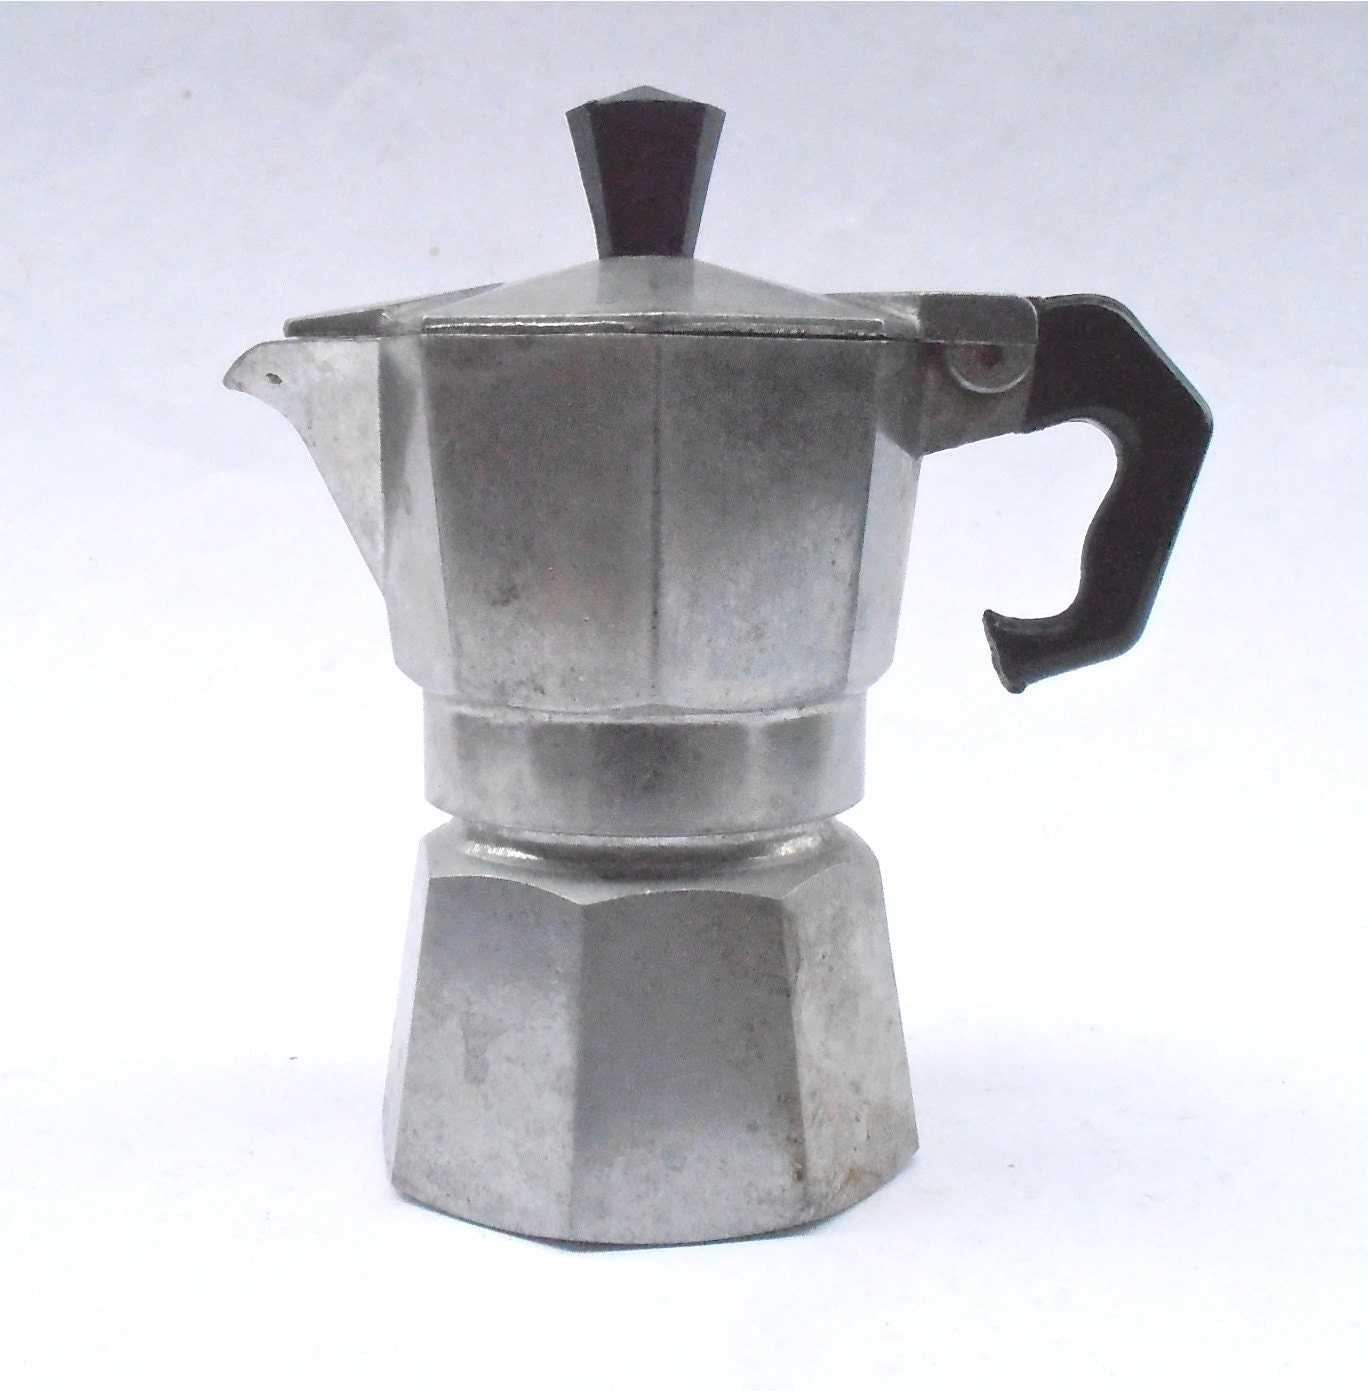 Italian Coffee Maker Best Coffee : Vintage One Cup Espresso Coffee Maker Marimba Italian Aluminum